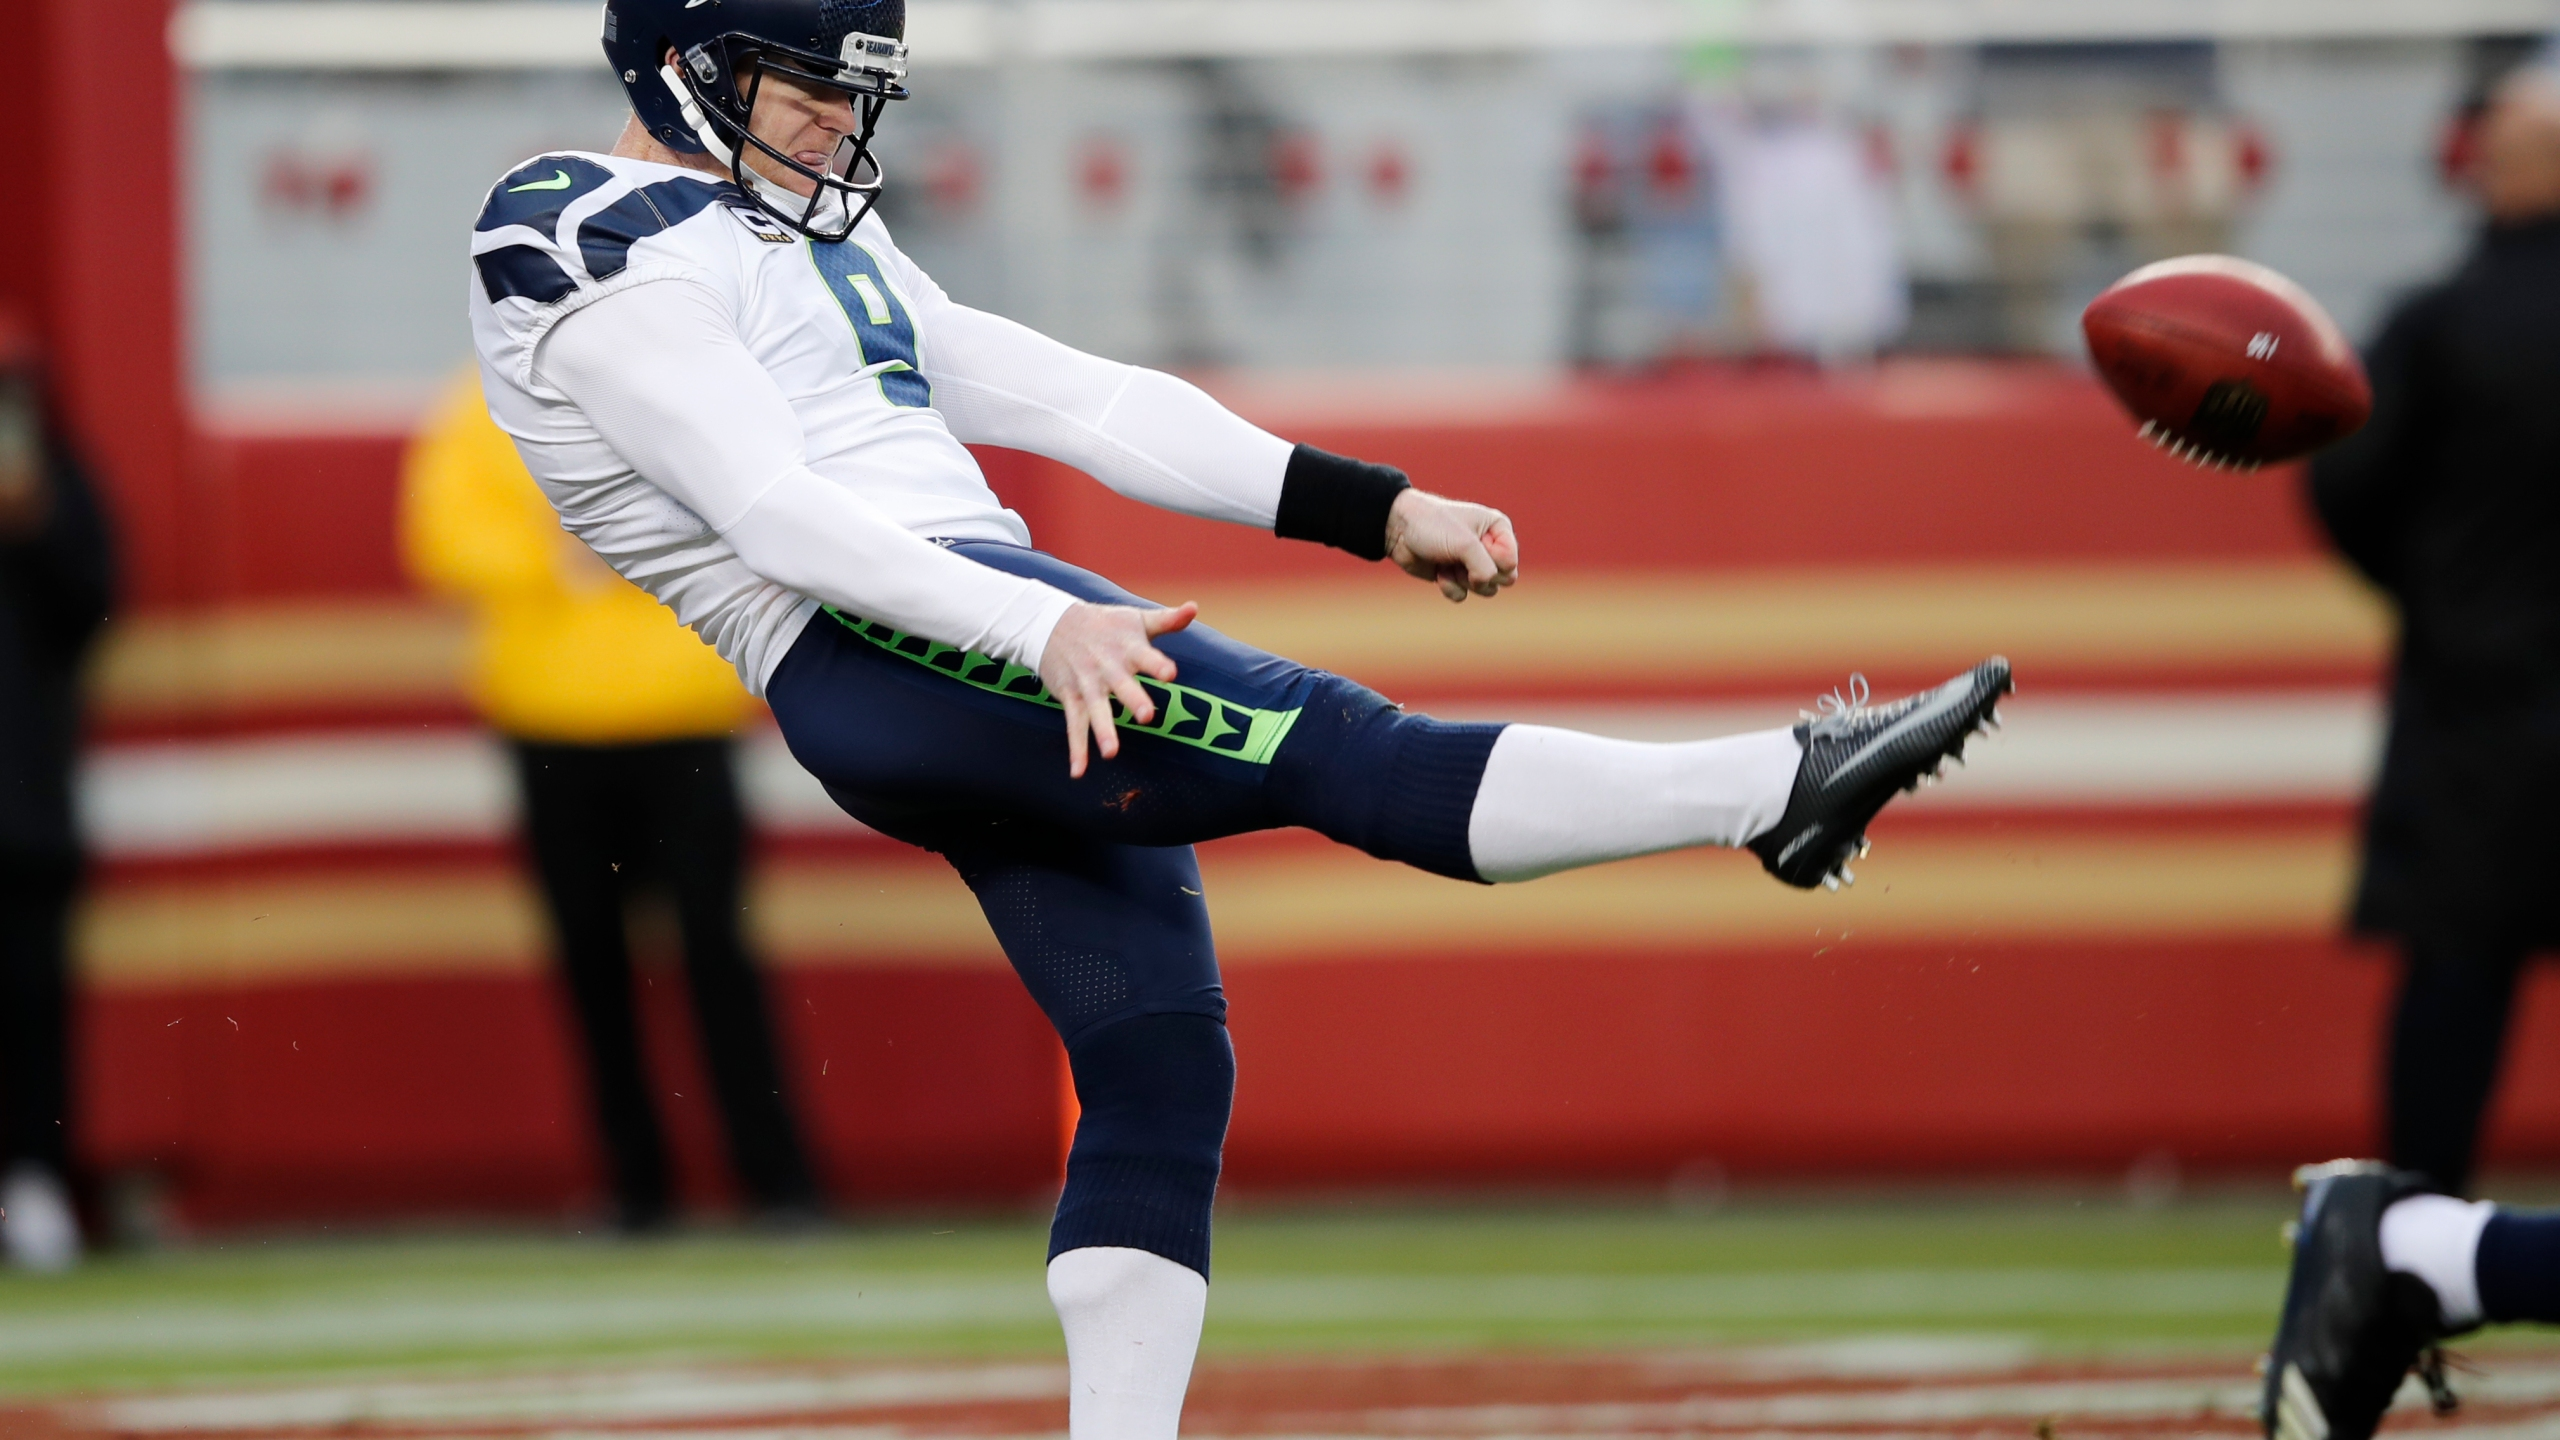 Seahawks 49ers Football_1534888374965